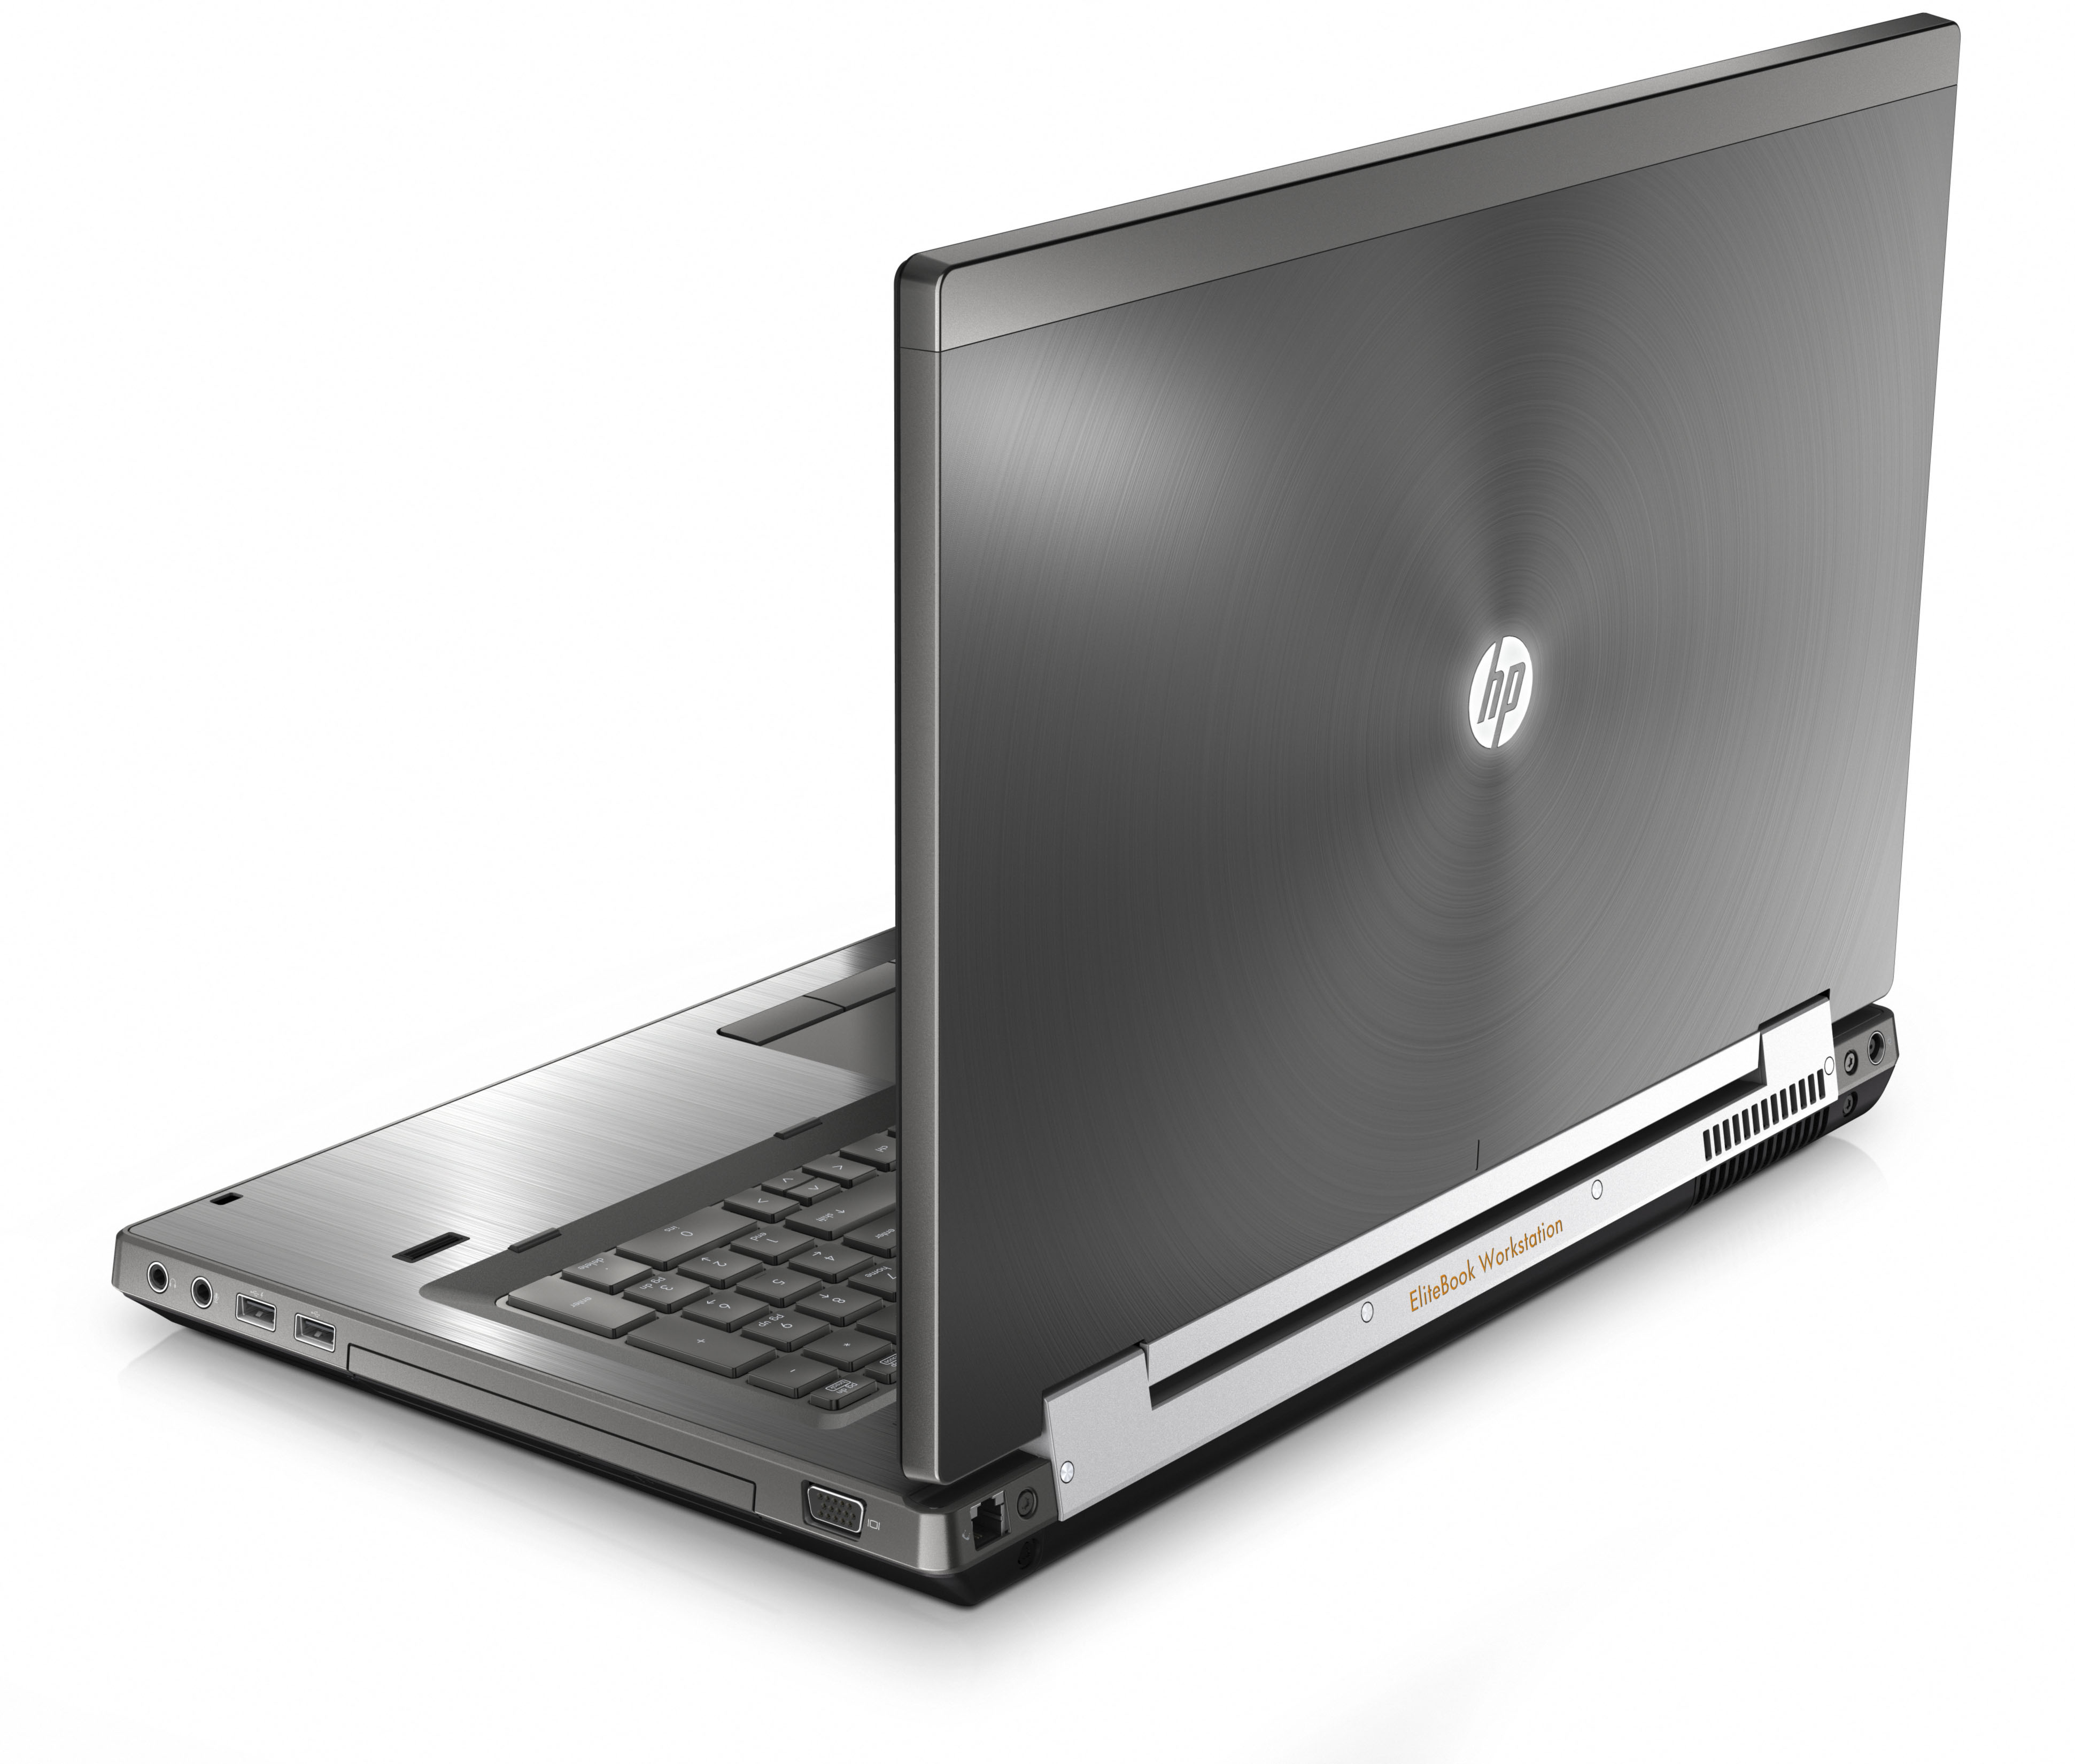 EliteBook 8760w Rear Right Open